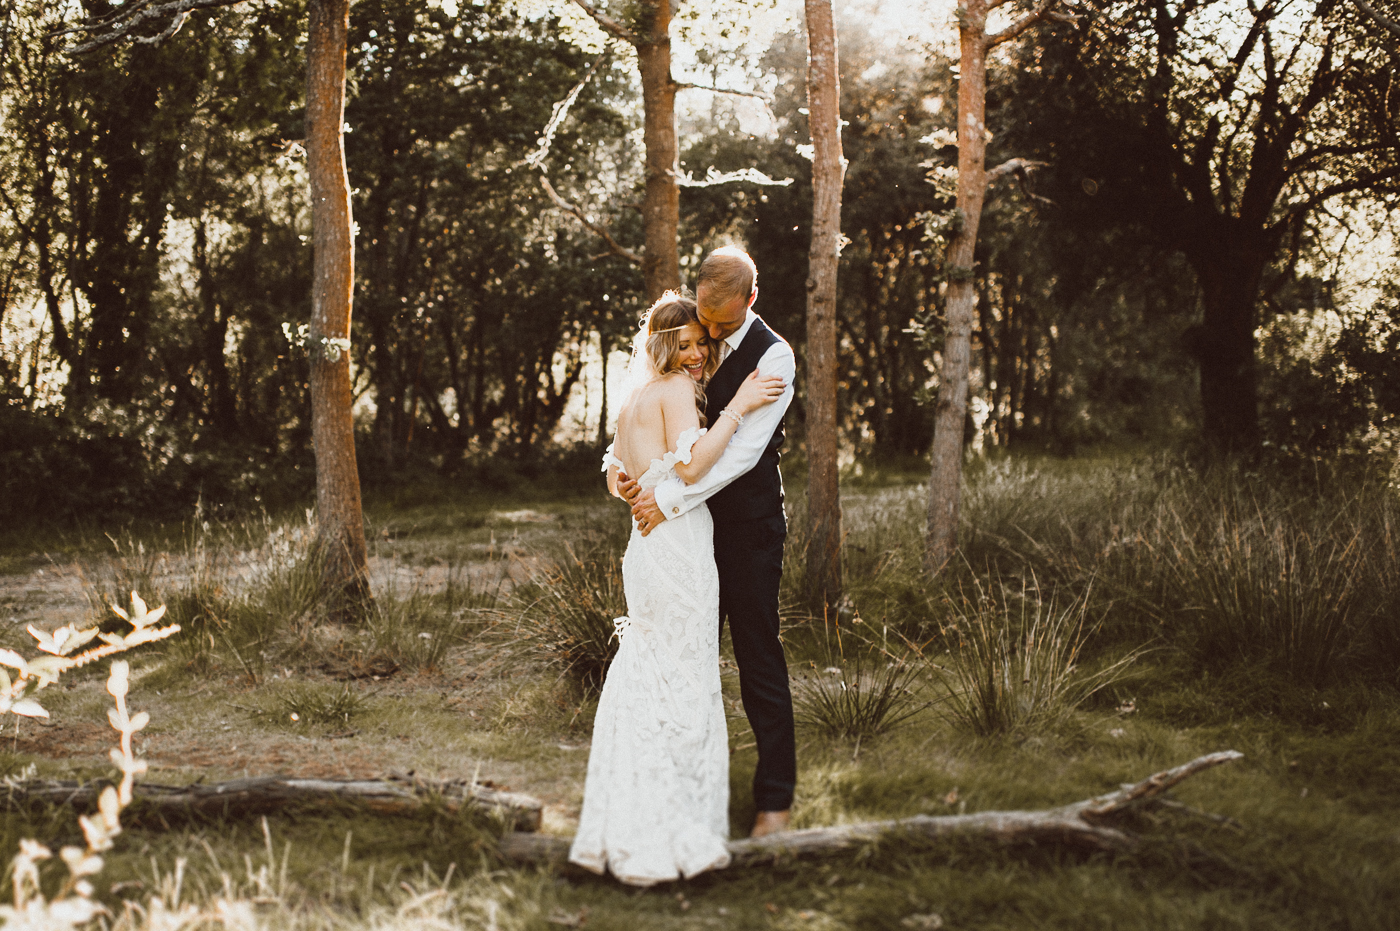 Hampshire wedding photographer, at Tournerbury woods estate